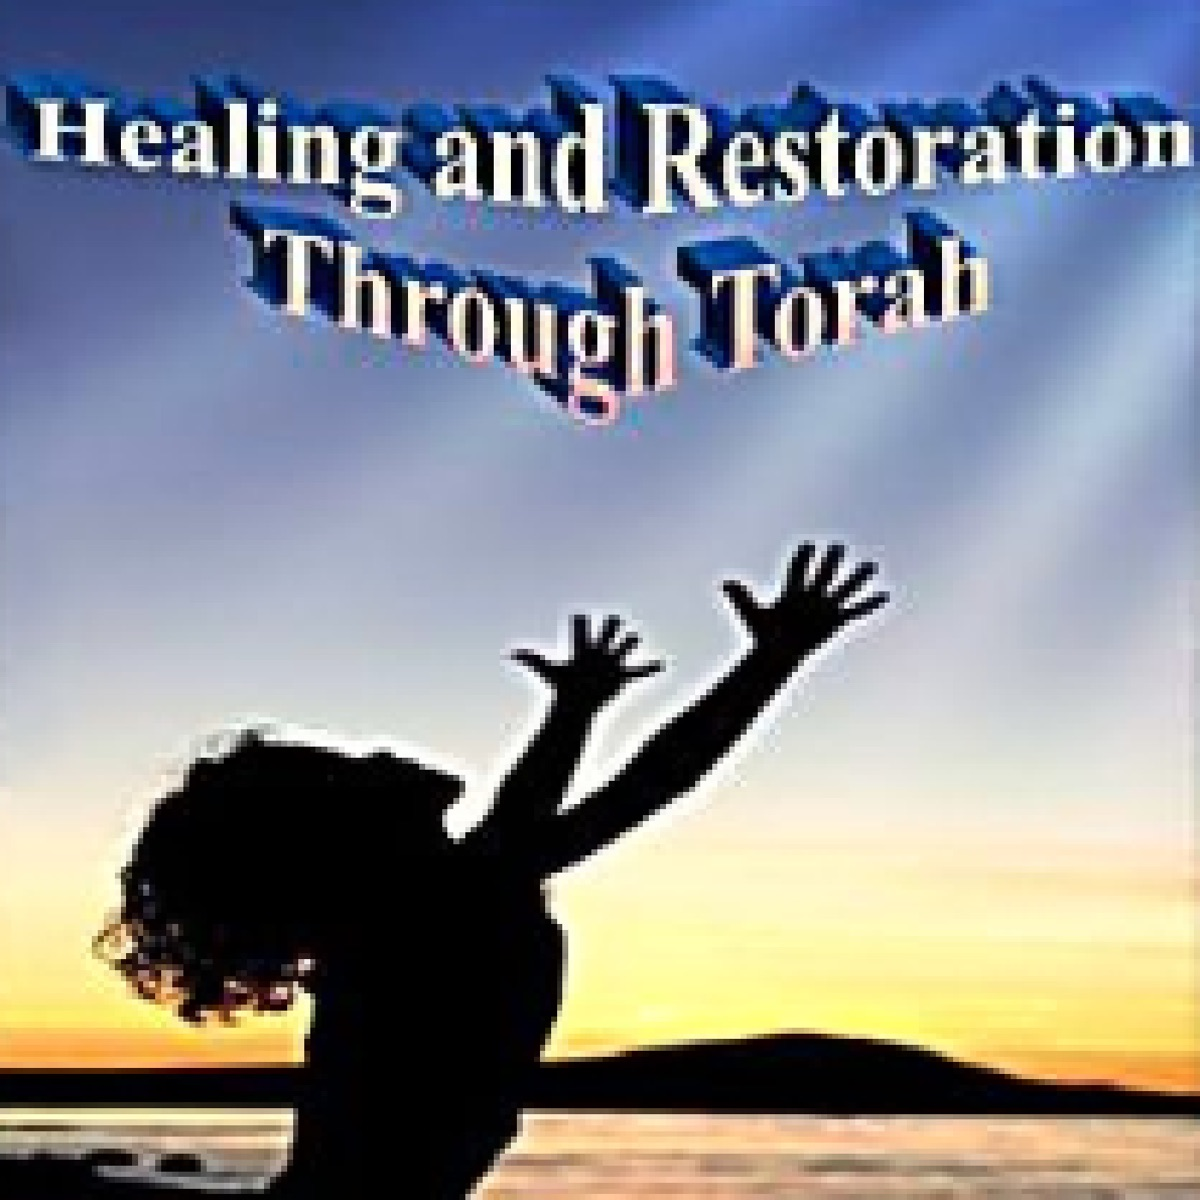 Healing and Restoration Through Torah